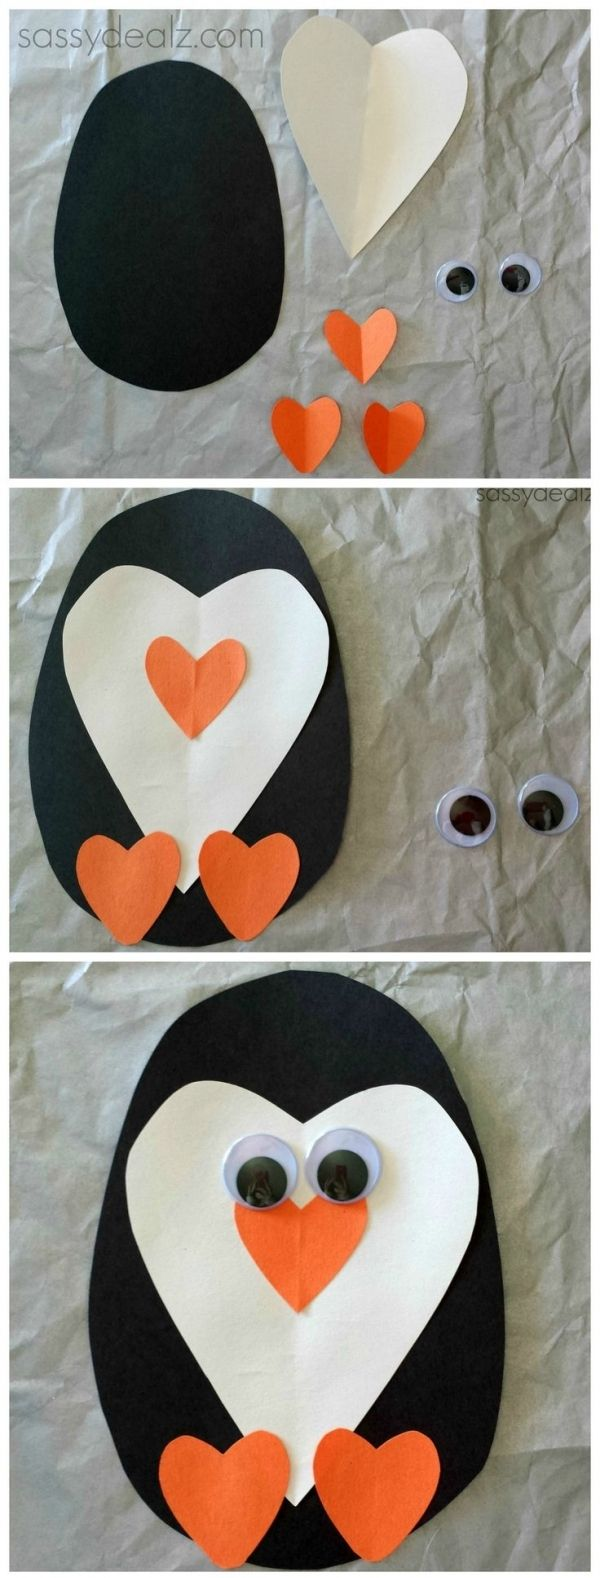 36 Fun Valentine's Day Crafts You Can Use to Show Your Love ...